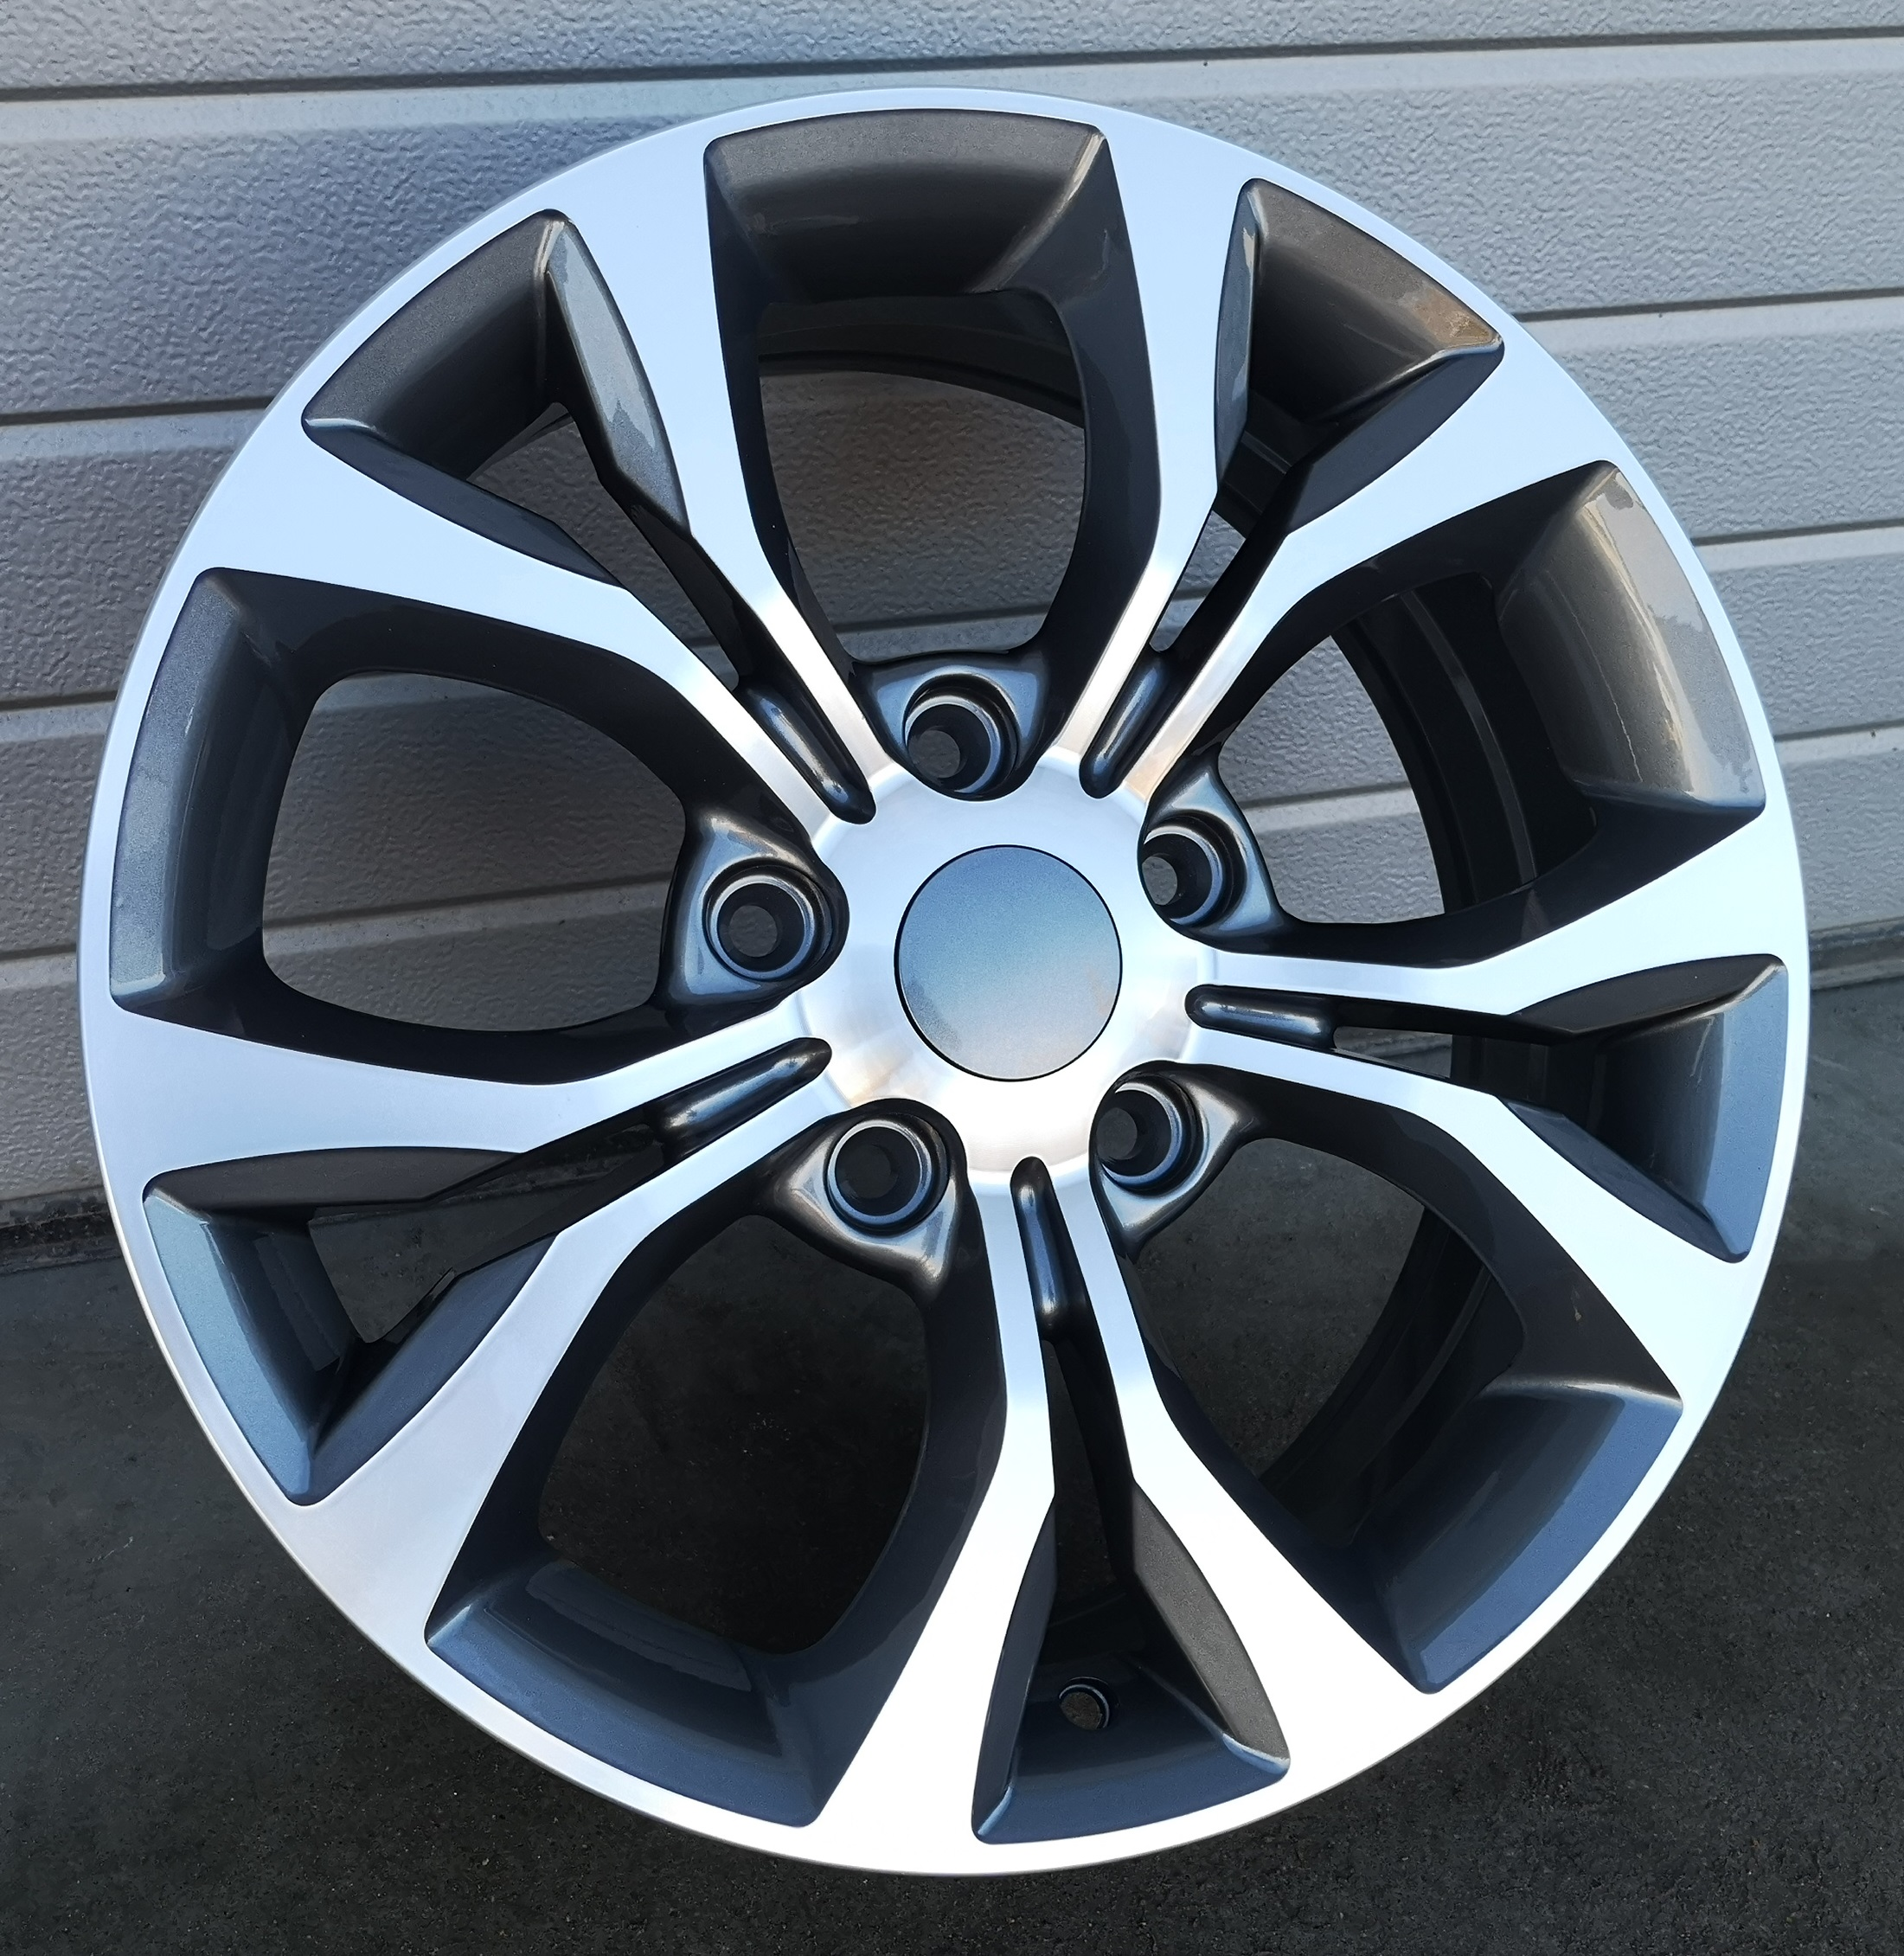 D17X6.5 5X127 ET40 71.5 BY1270 MG+POWDER COATING (+3eur) RWR Chrys (D1)## 6.5x17 ET40 5x127